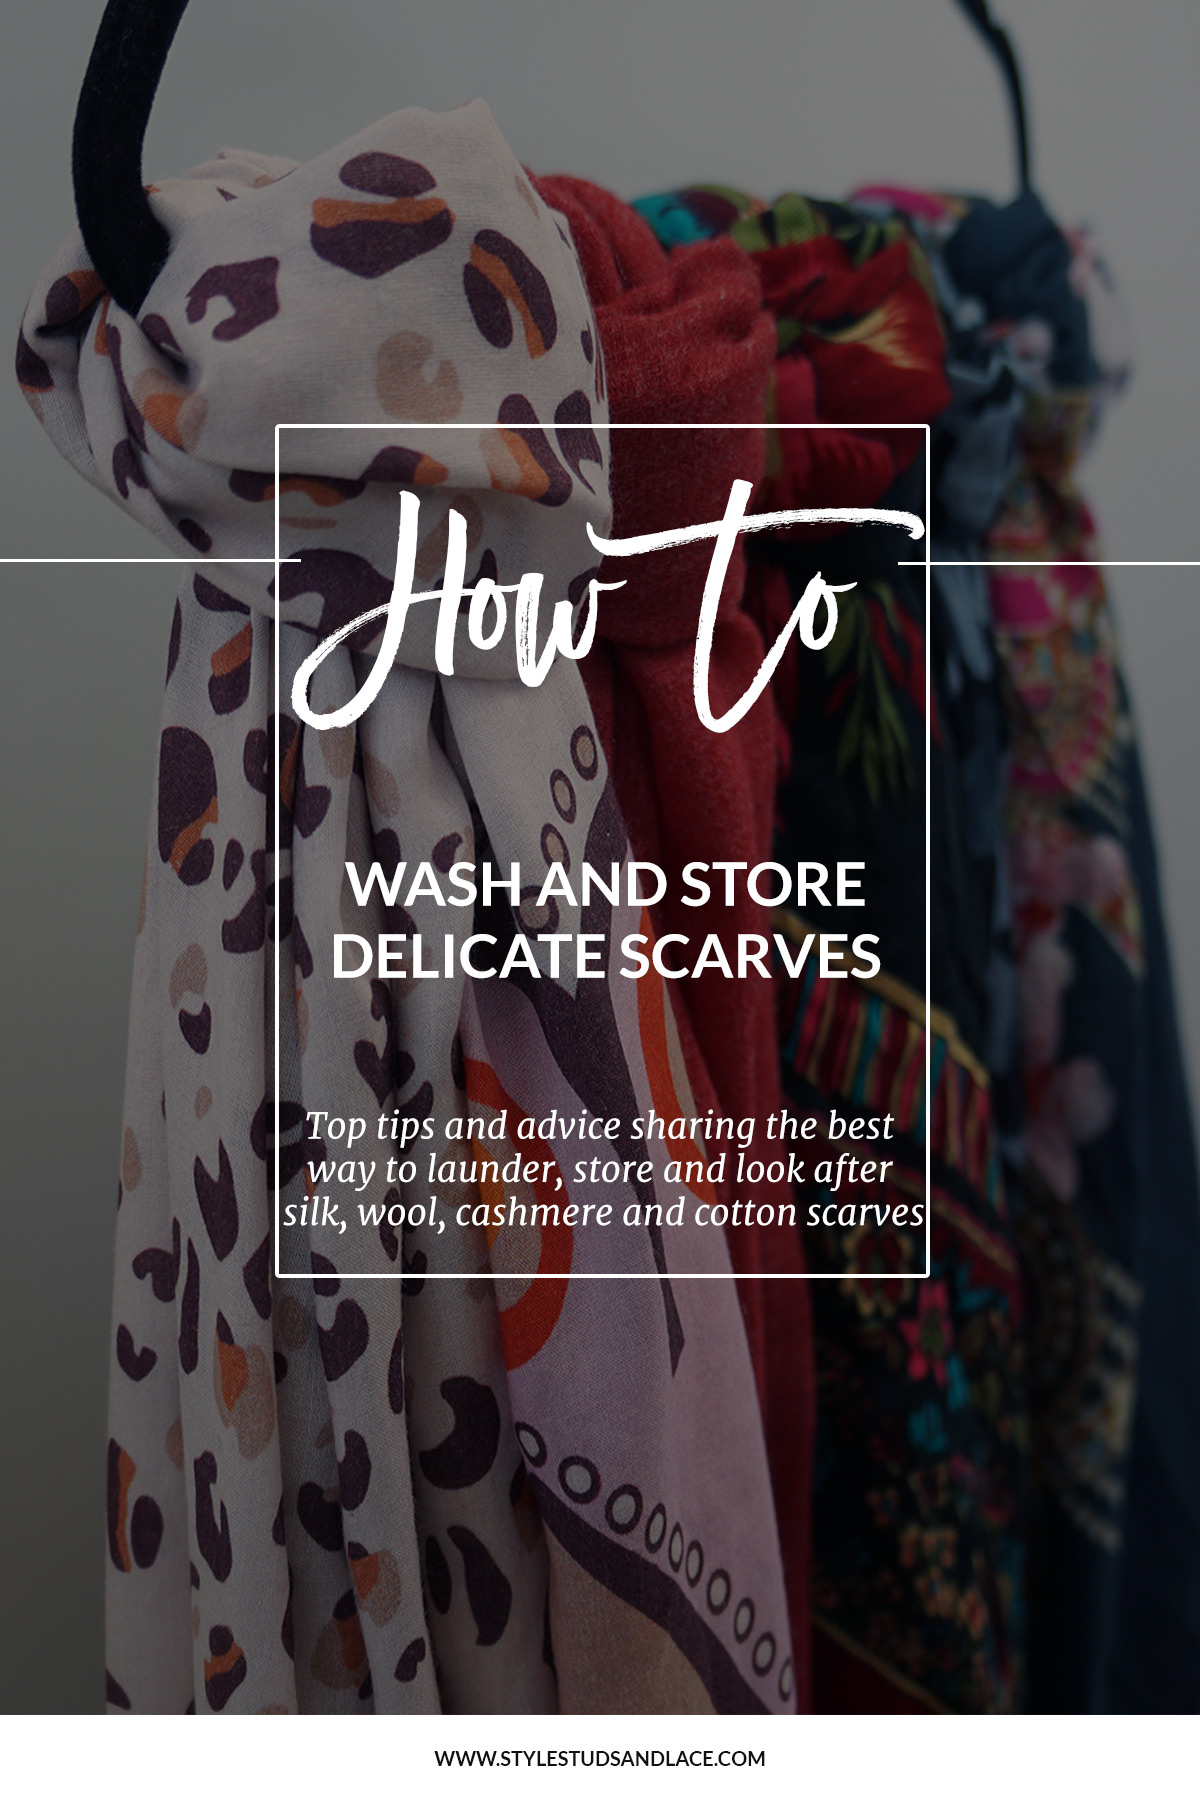 How to look after, launder and store delicate scarves | Top tips for cleaning, storing and taking care of silk, wool, cashmere and cotton scarves